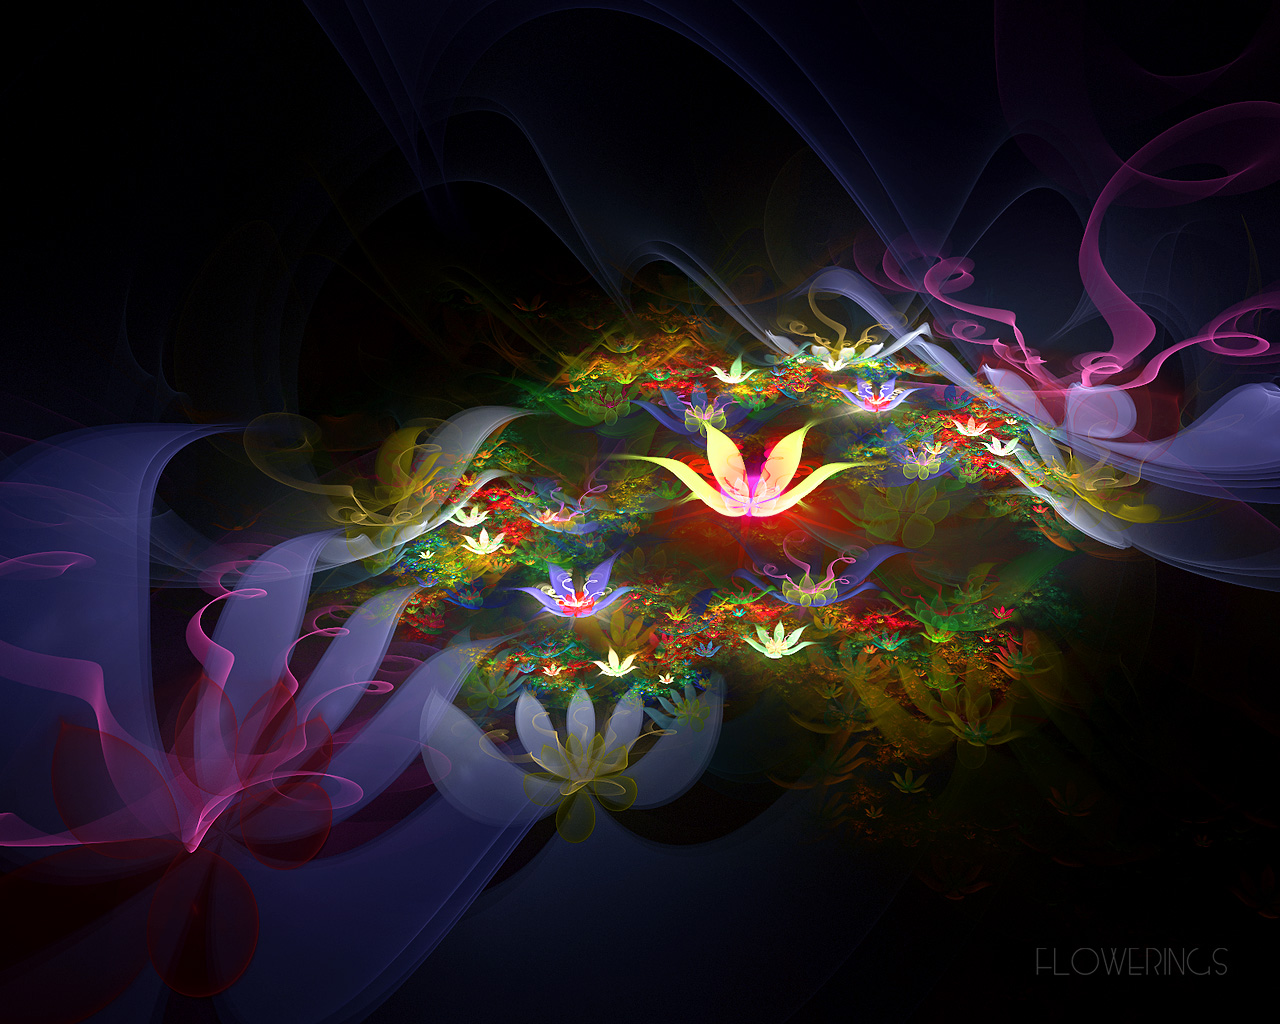 45 amazing 3d wallpapers insite flower 3d free computer wallpapers 1280x1024